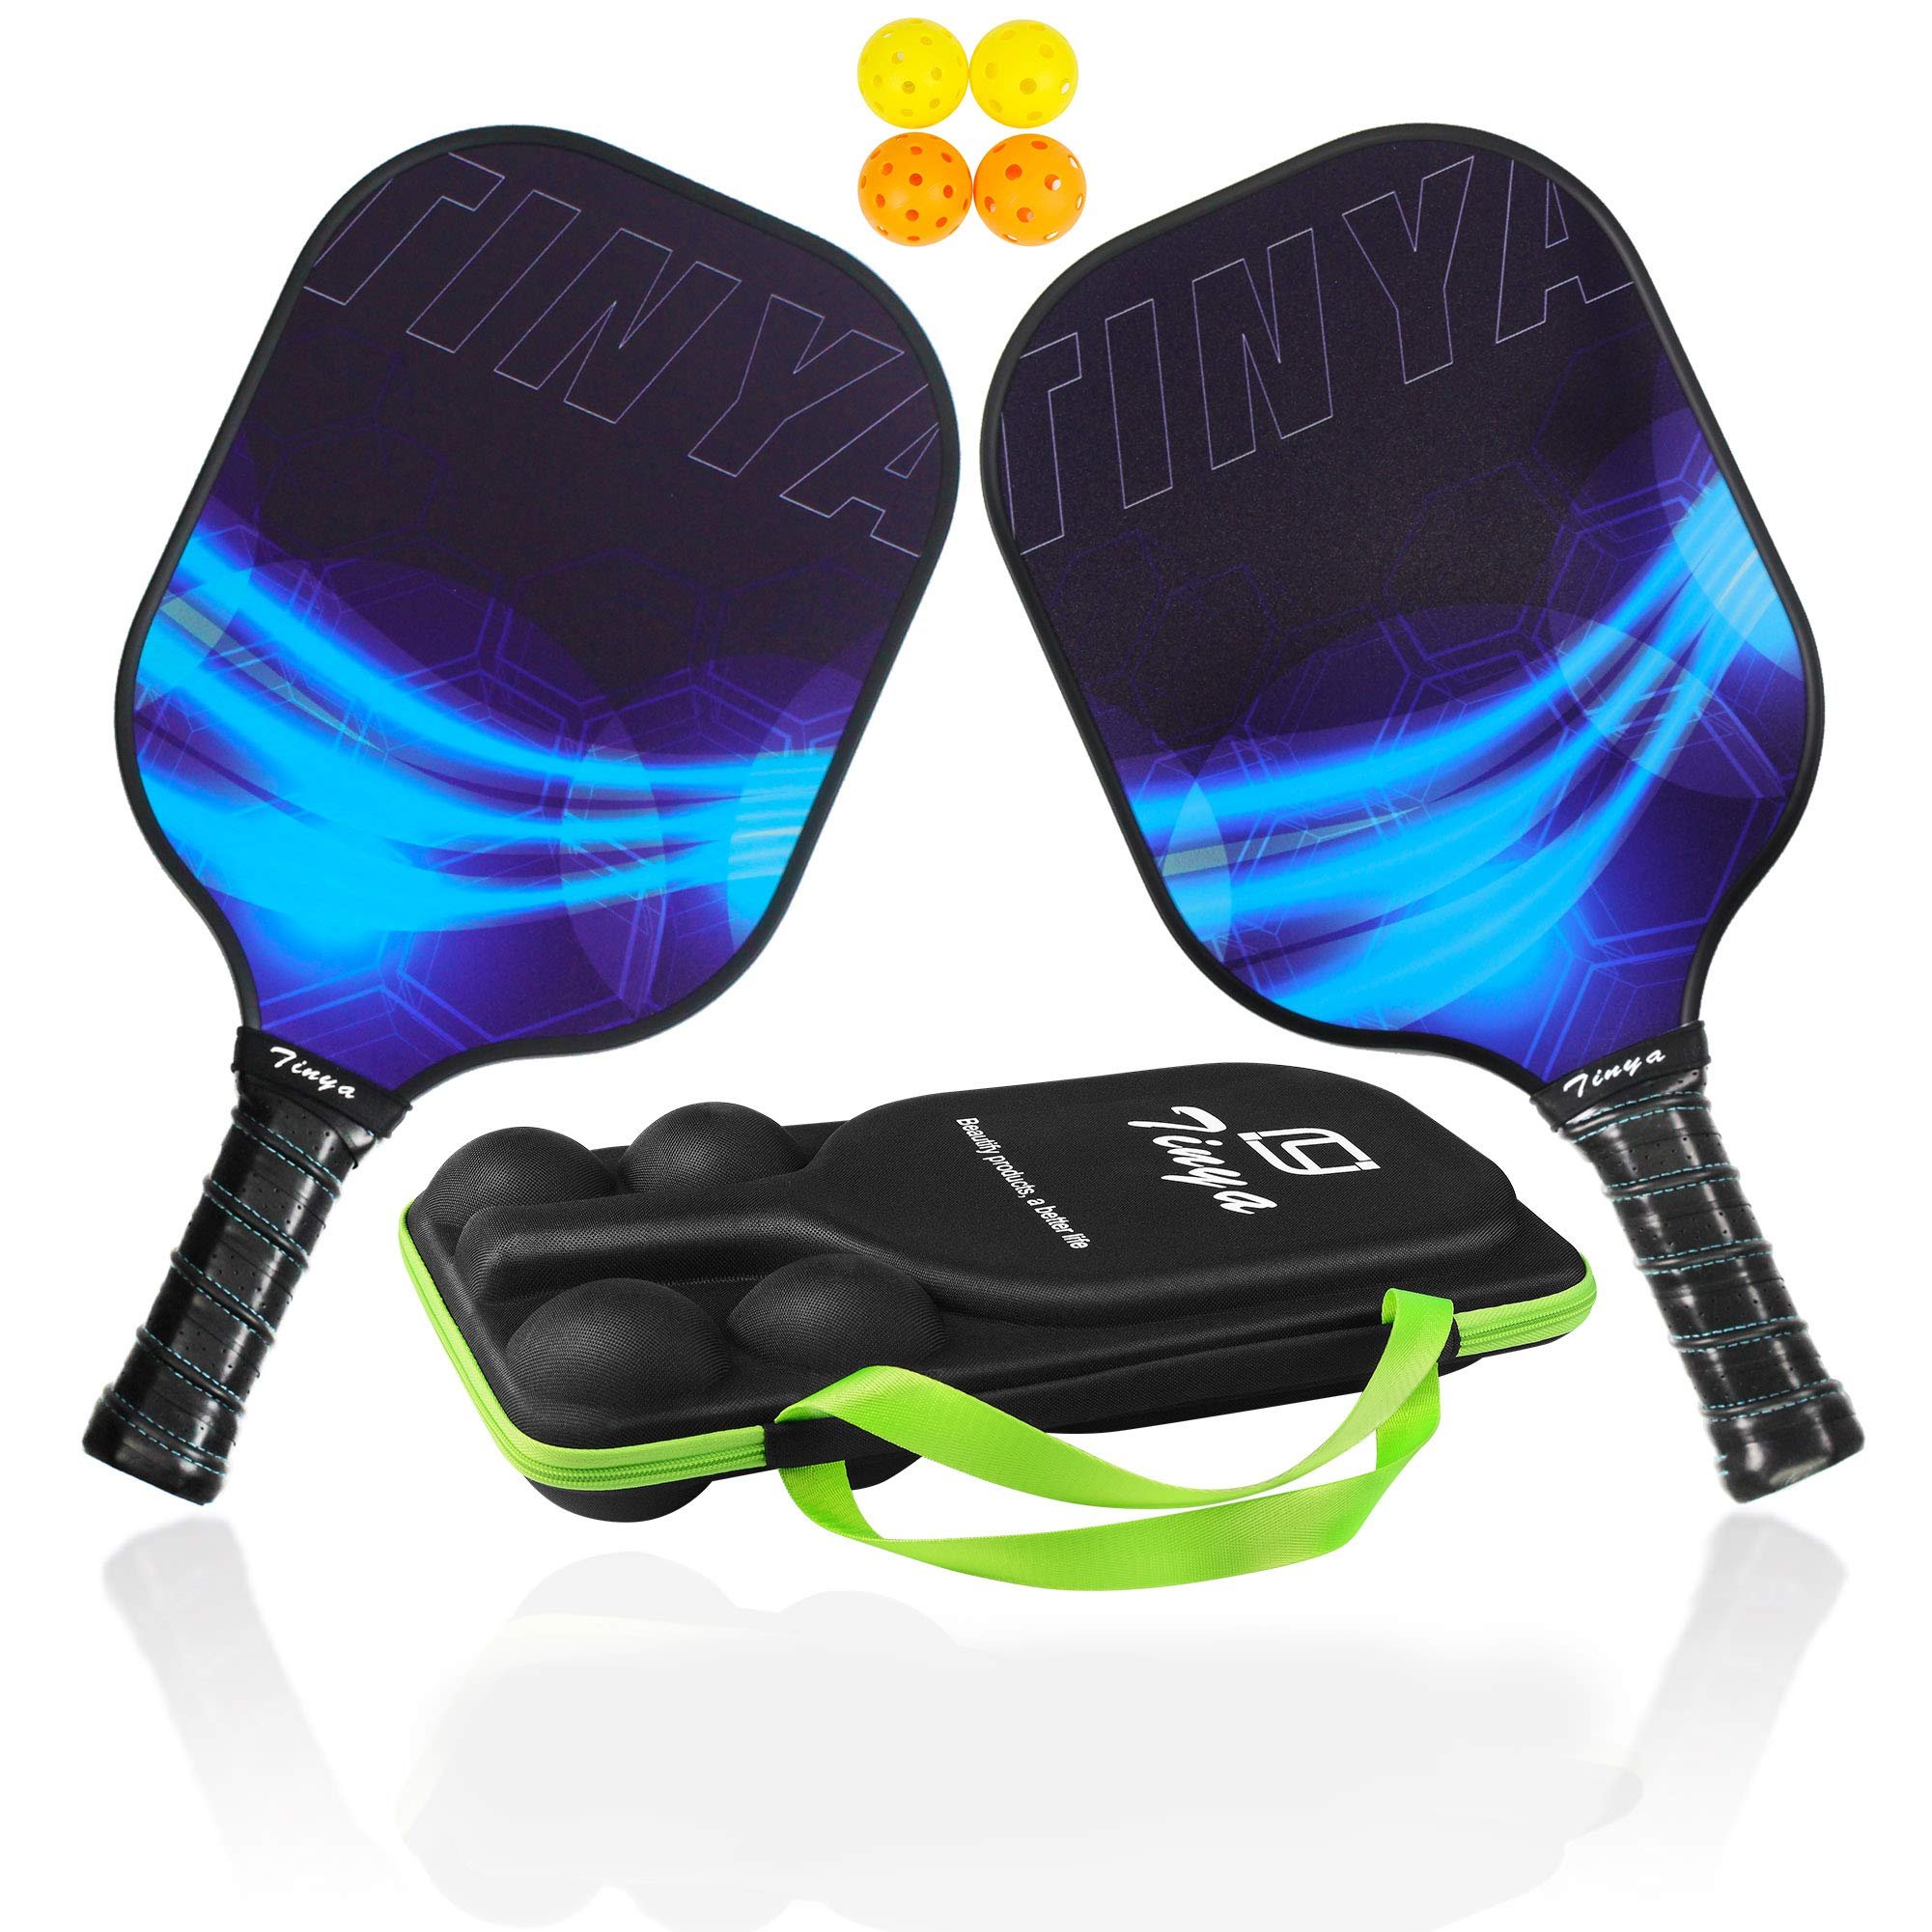 EDEUOEY Graphite Pickleball Paddle Set: USAPA Approved -WGWV